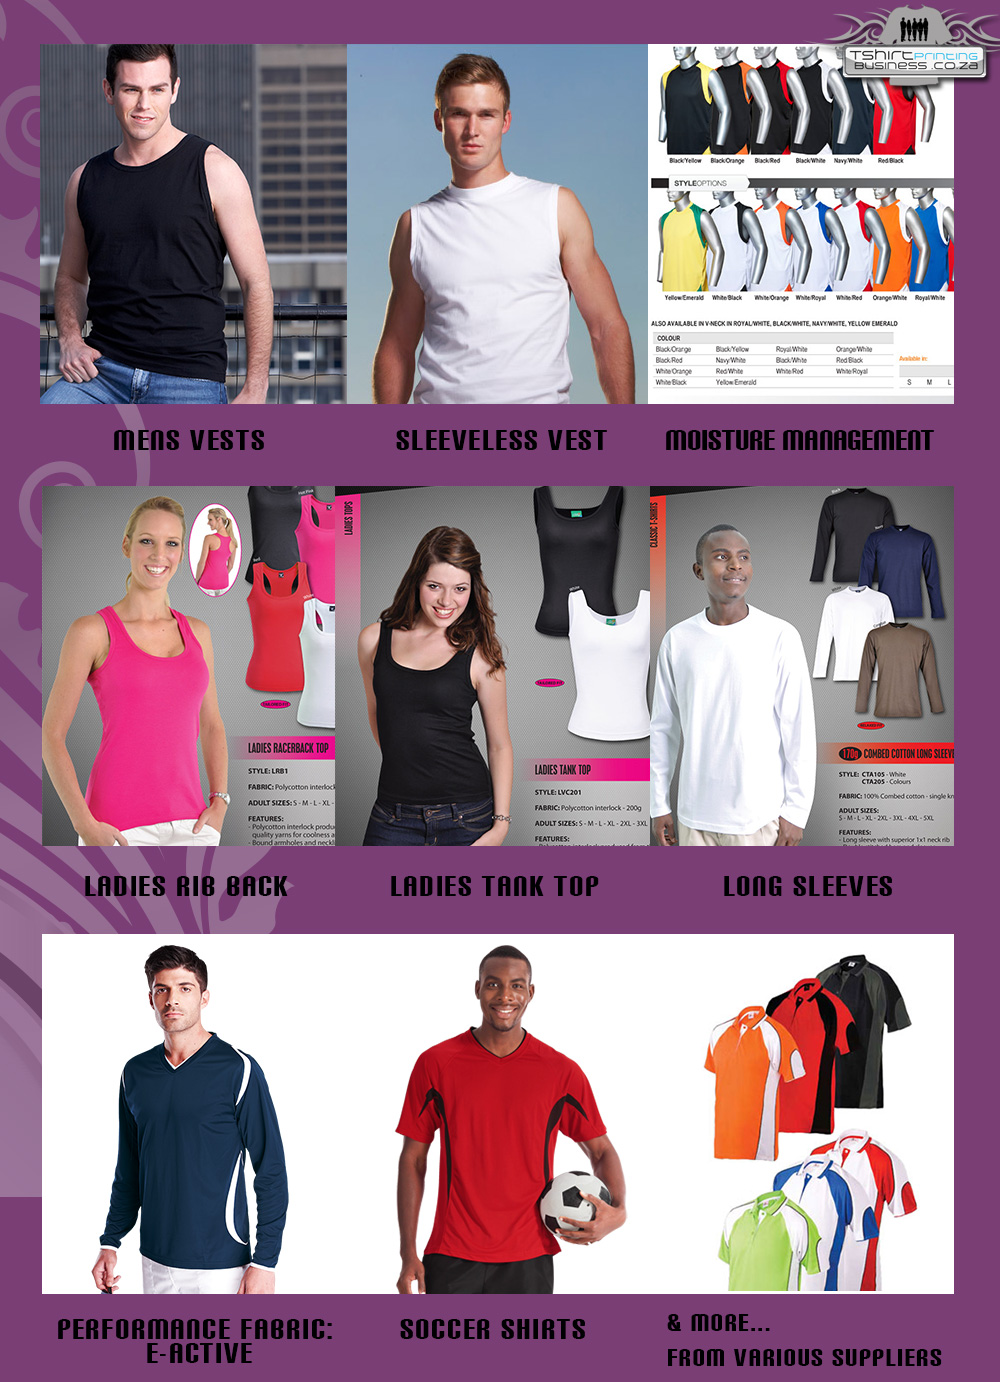 wholesale-vests-sleeveless-tank-tops-long-sleeve-samples for sale